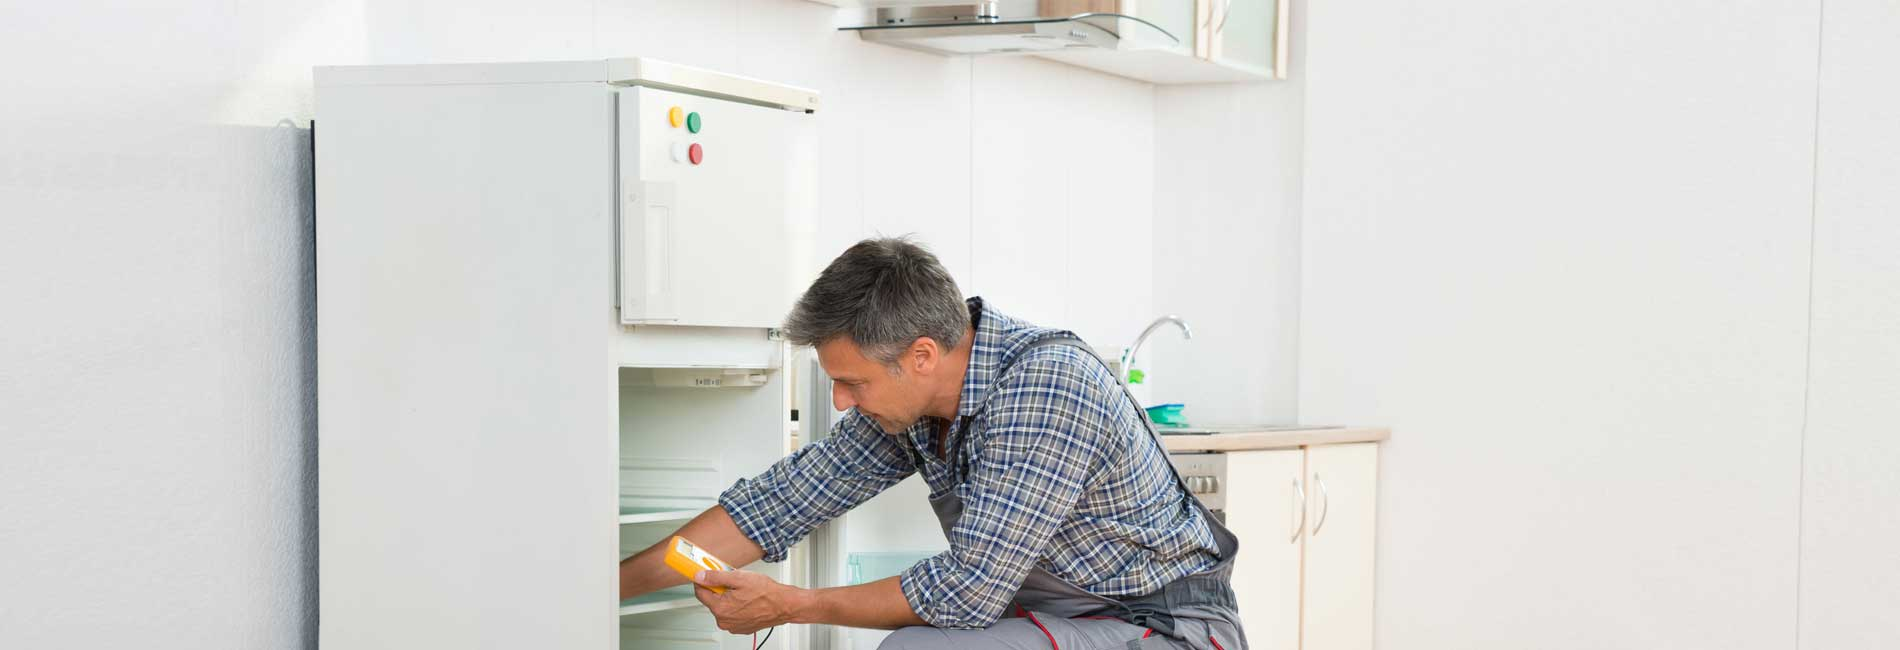 BPL Refrigerator Repair in Thiruvanmiyur